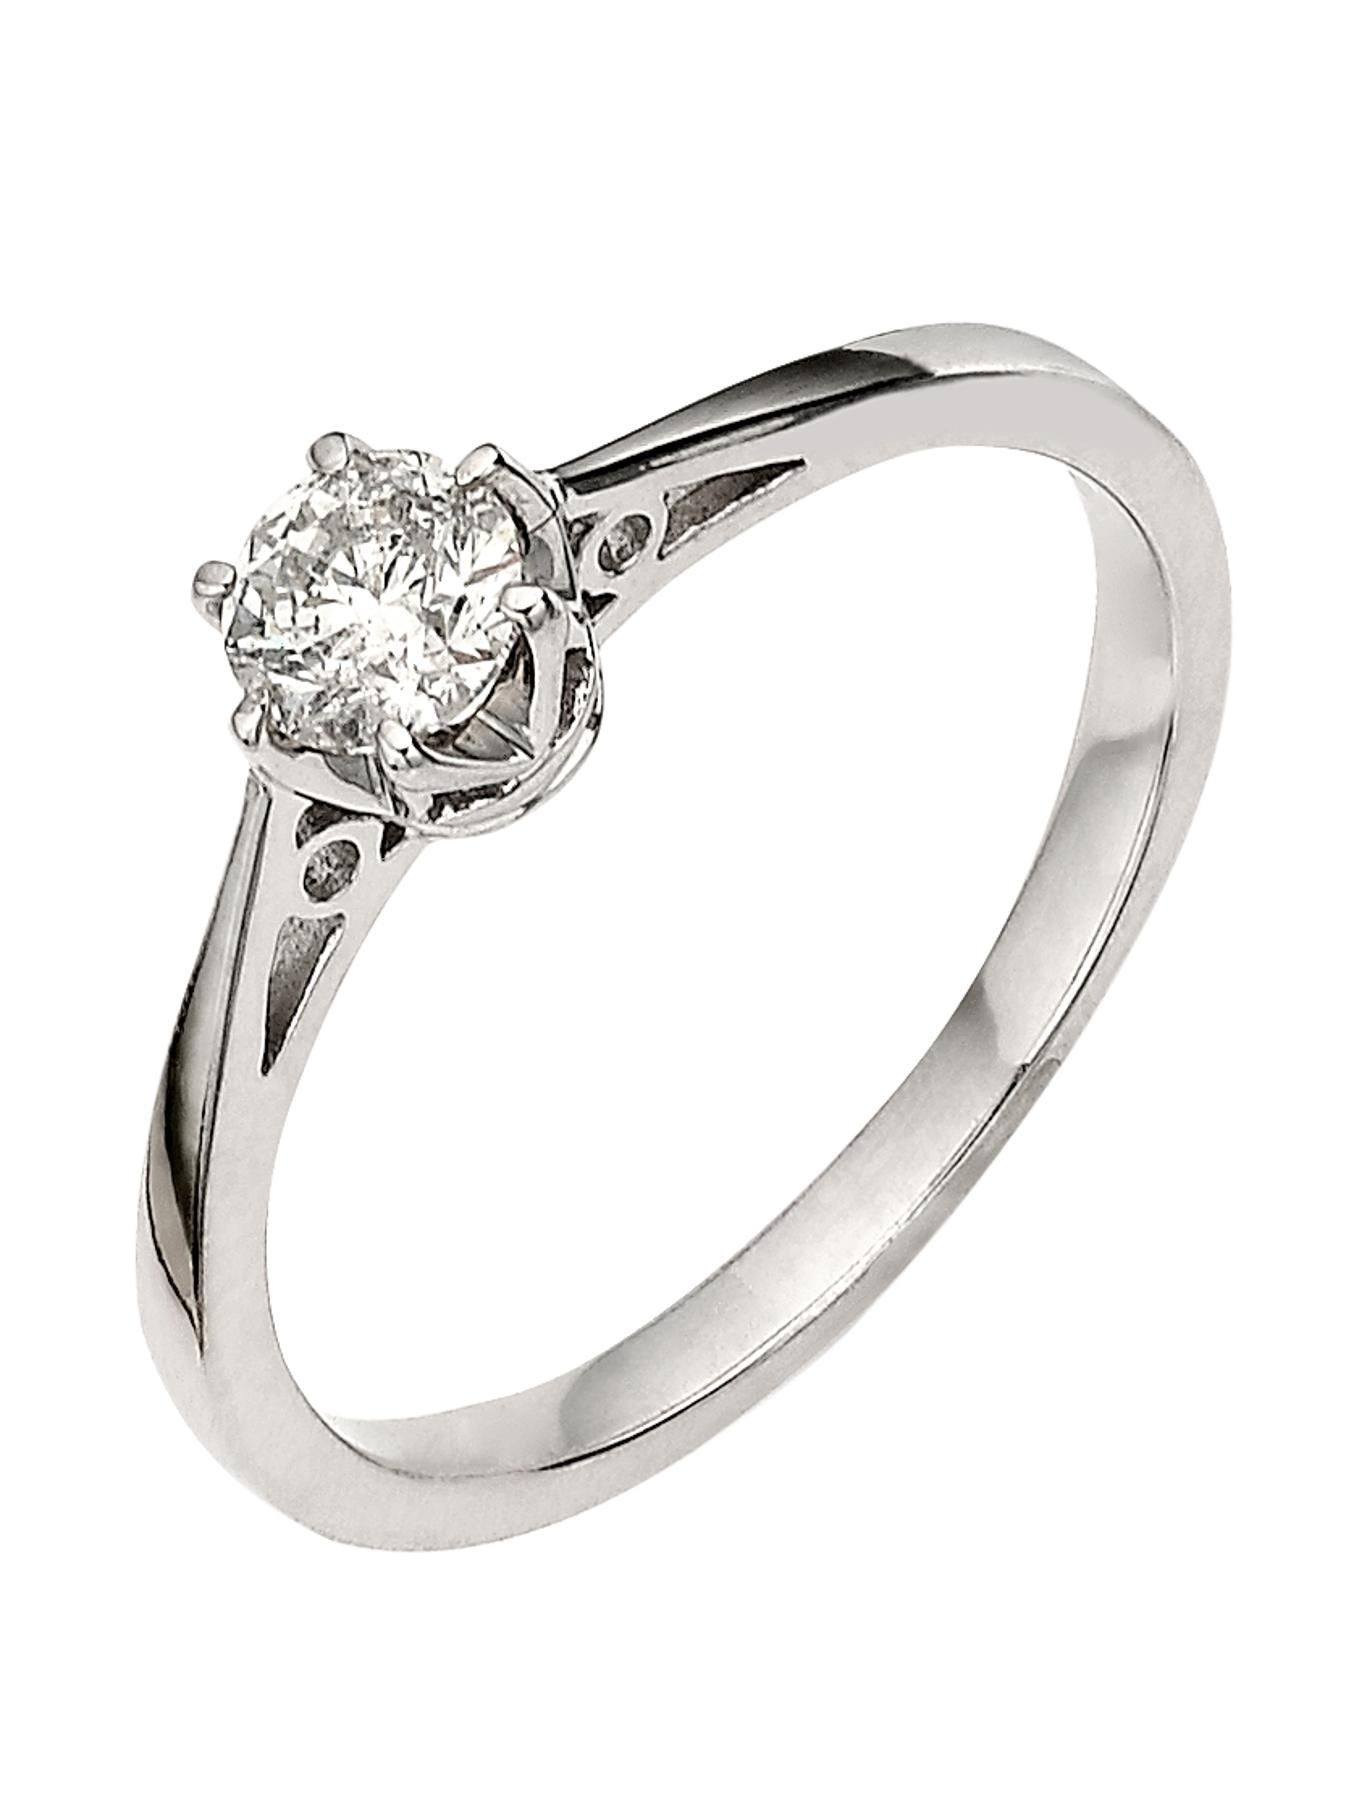 Diamond Solitaire Engagement 9ct White Gold Ring RRP £635 Size M